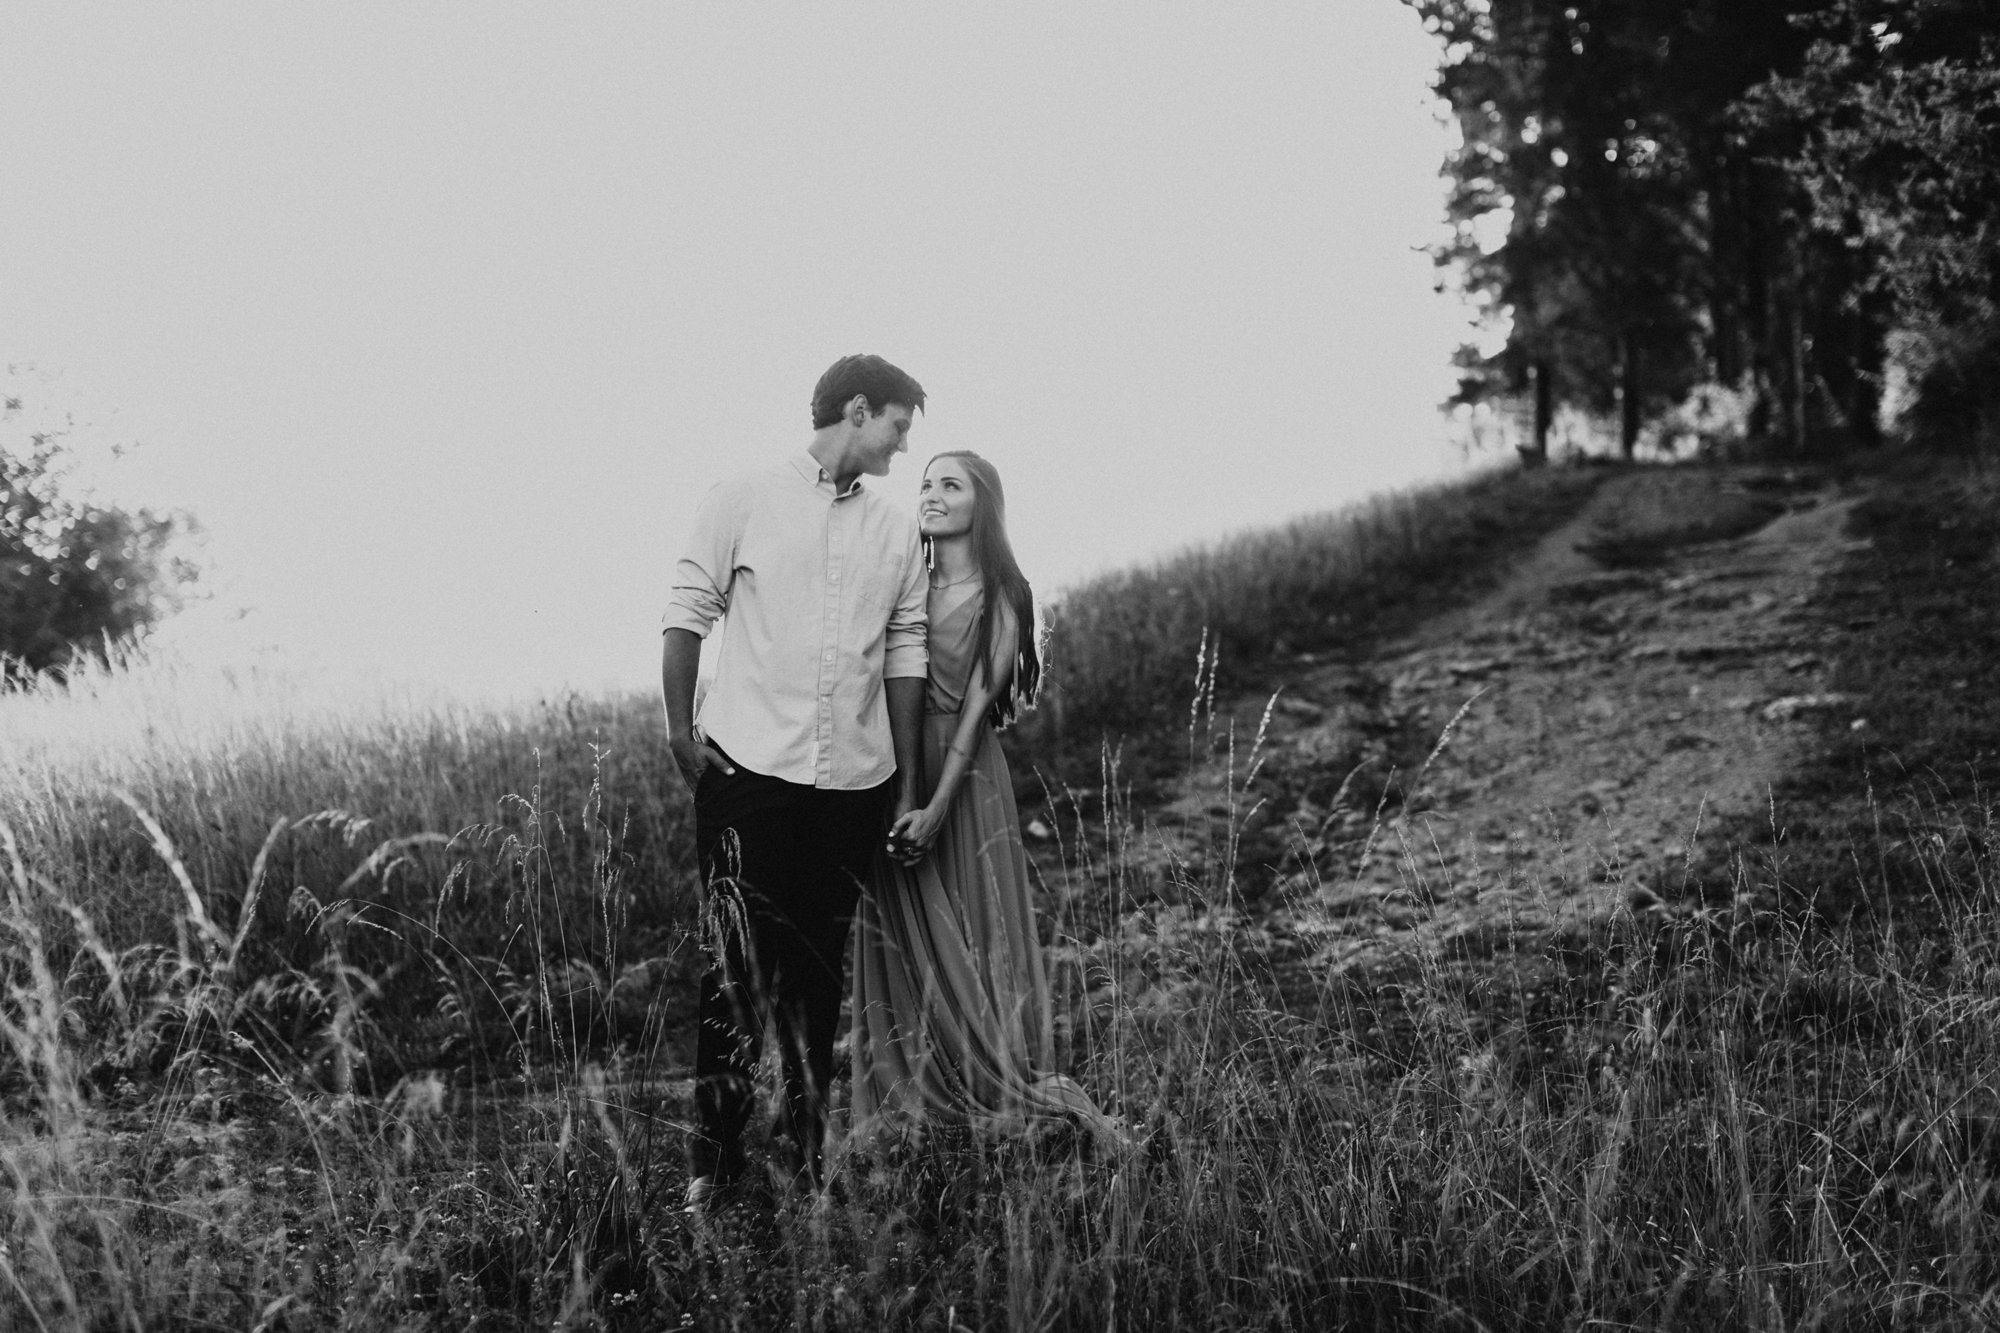 NashvilleTennessee_EngagementPhotos_Sunset_Summer_Adventure-2145.jpg